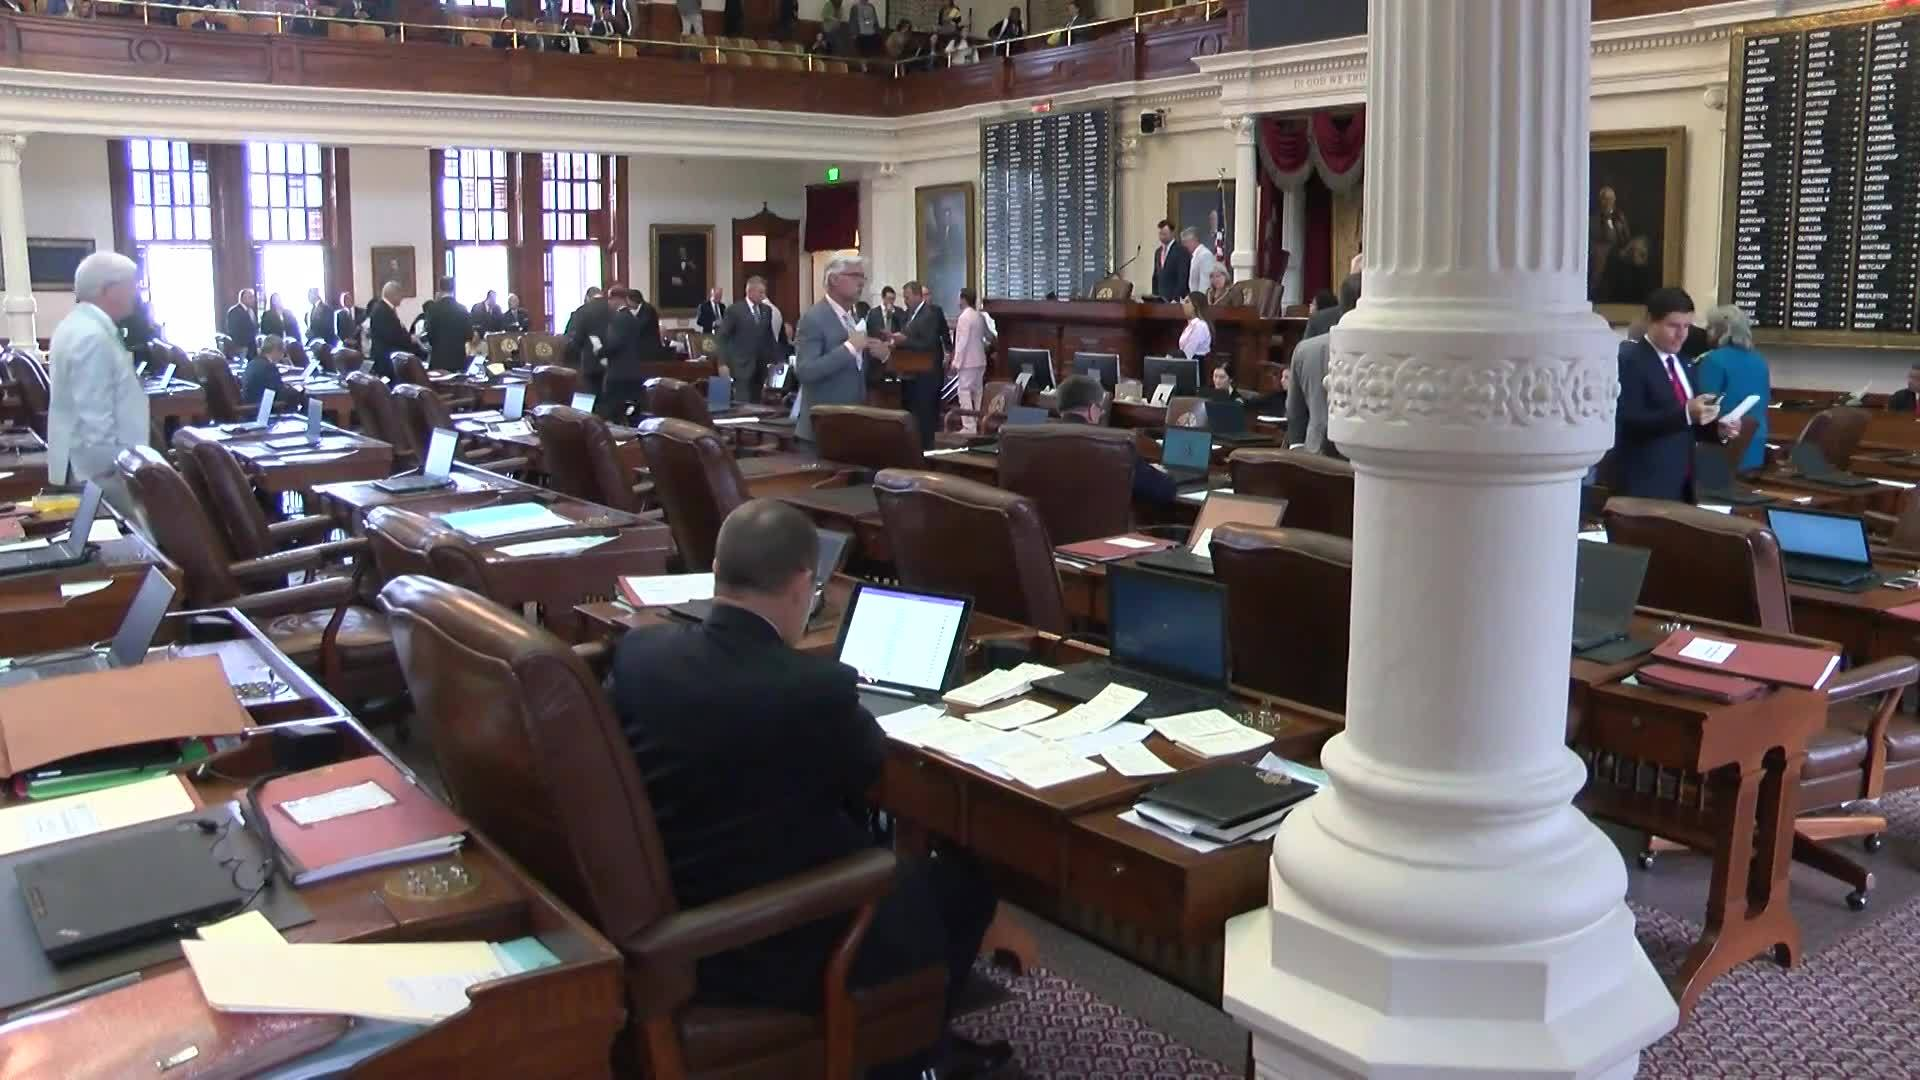 State of Texas: Amendment saves beer bill - for now